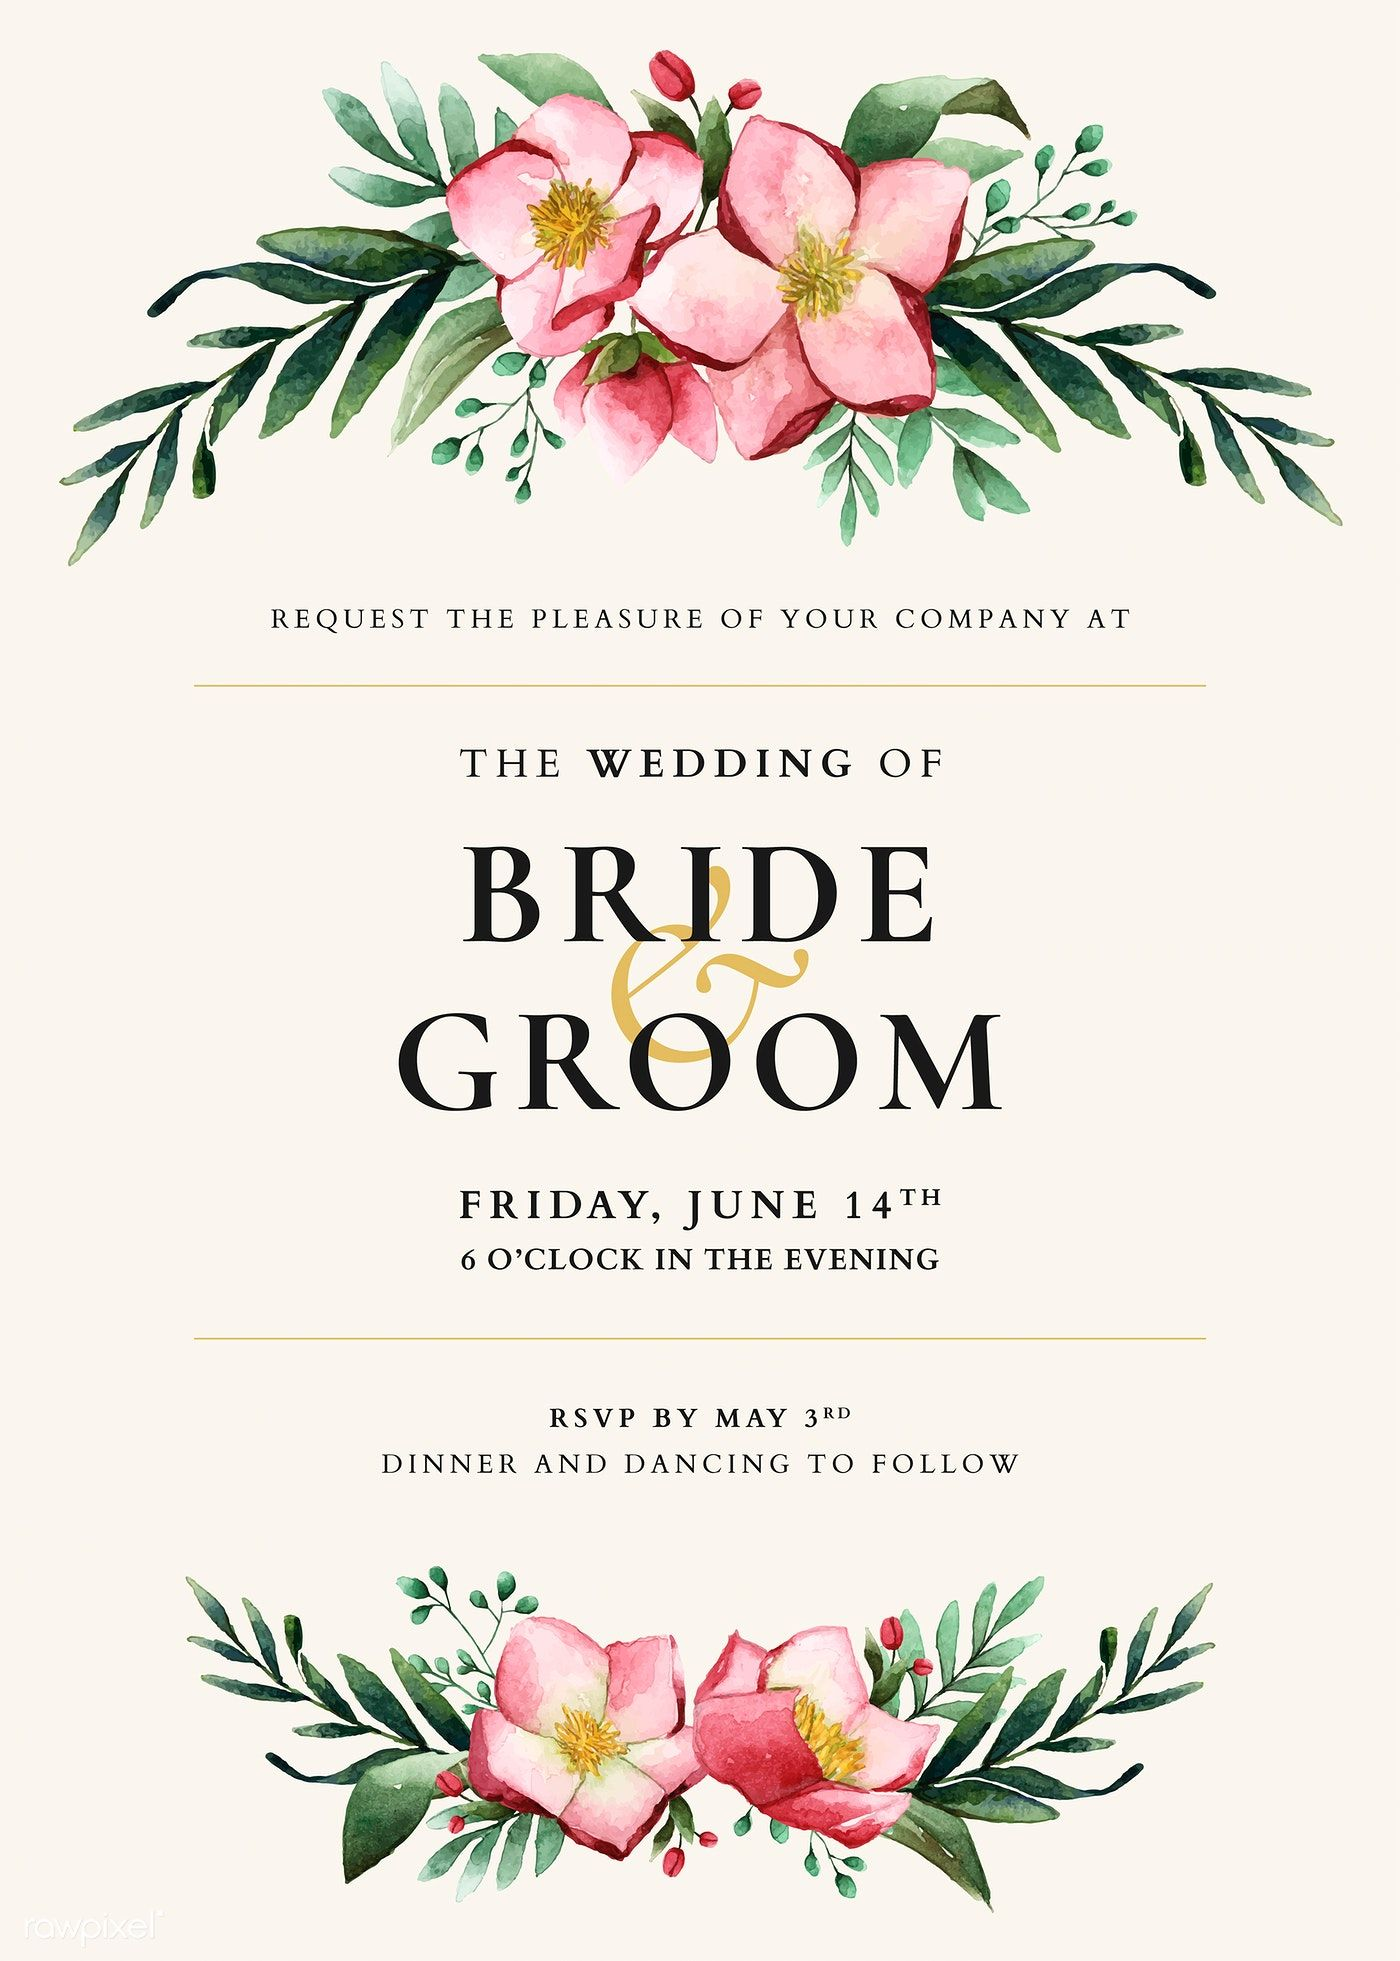 Download Premium Vector Of Flowers Invitation Card Template Vector